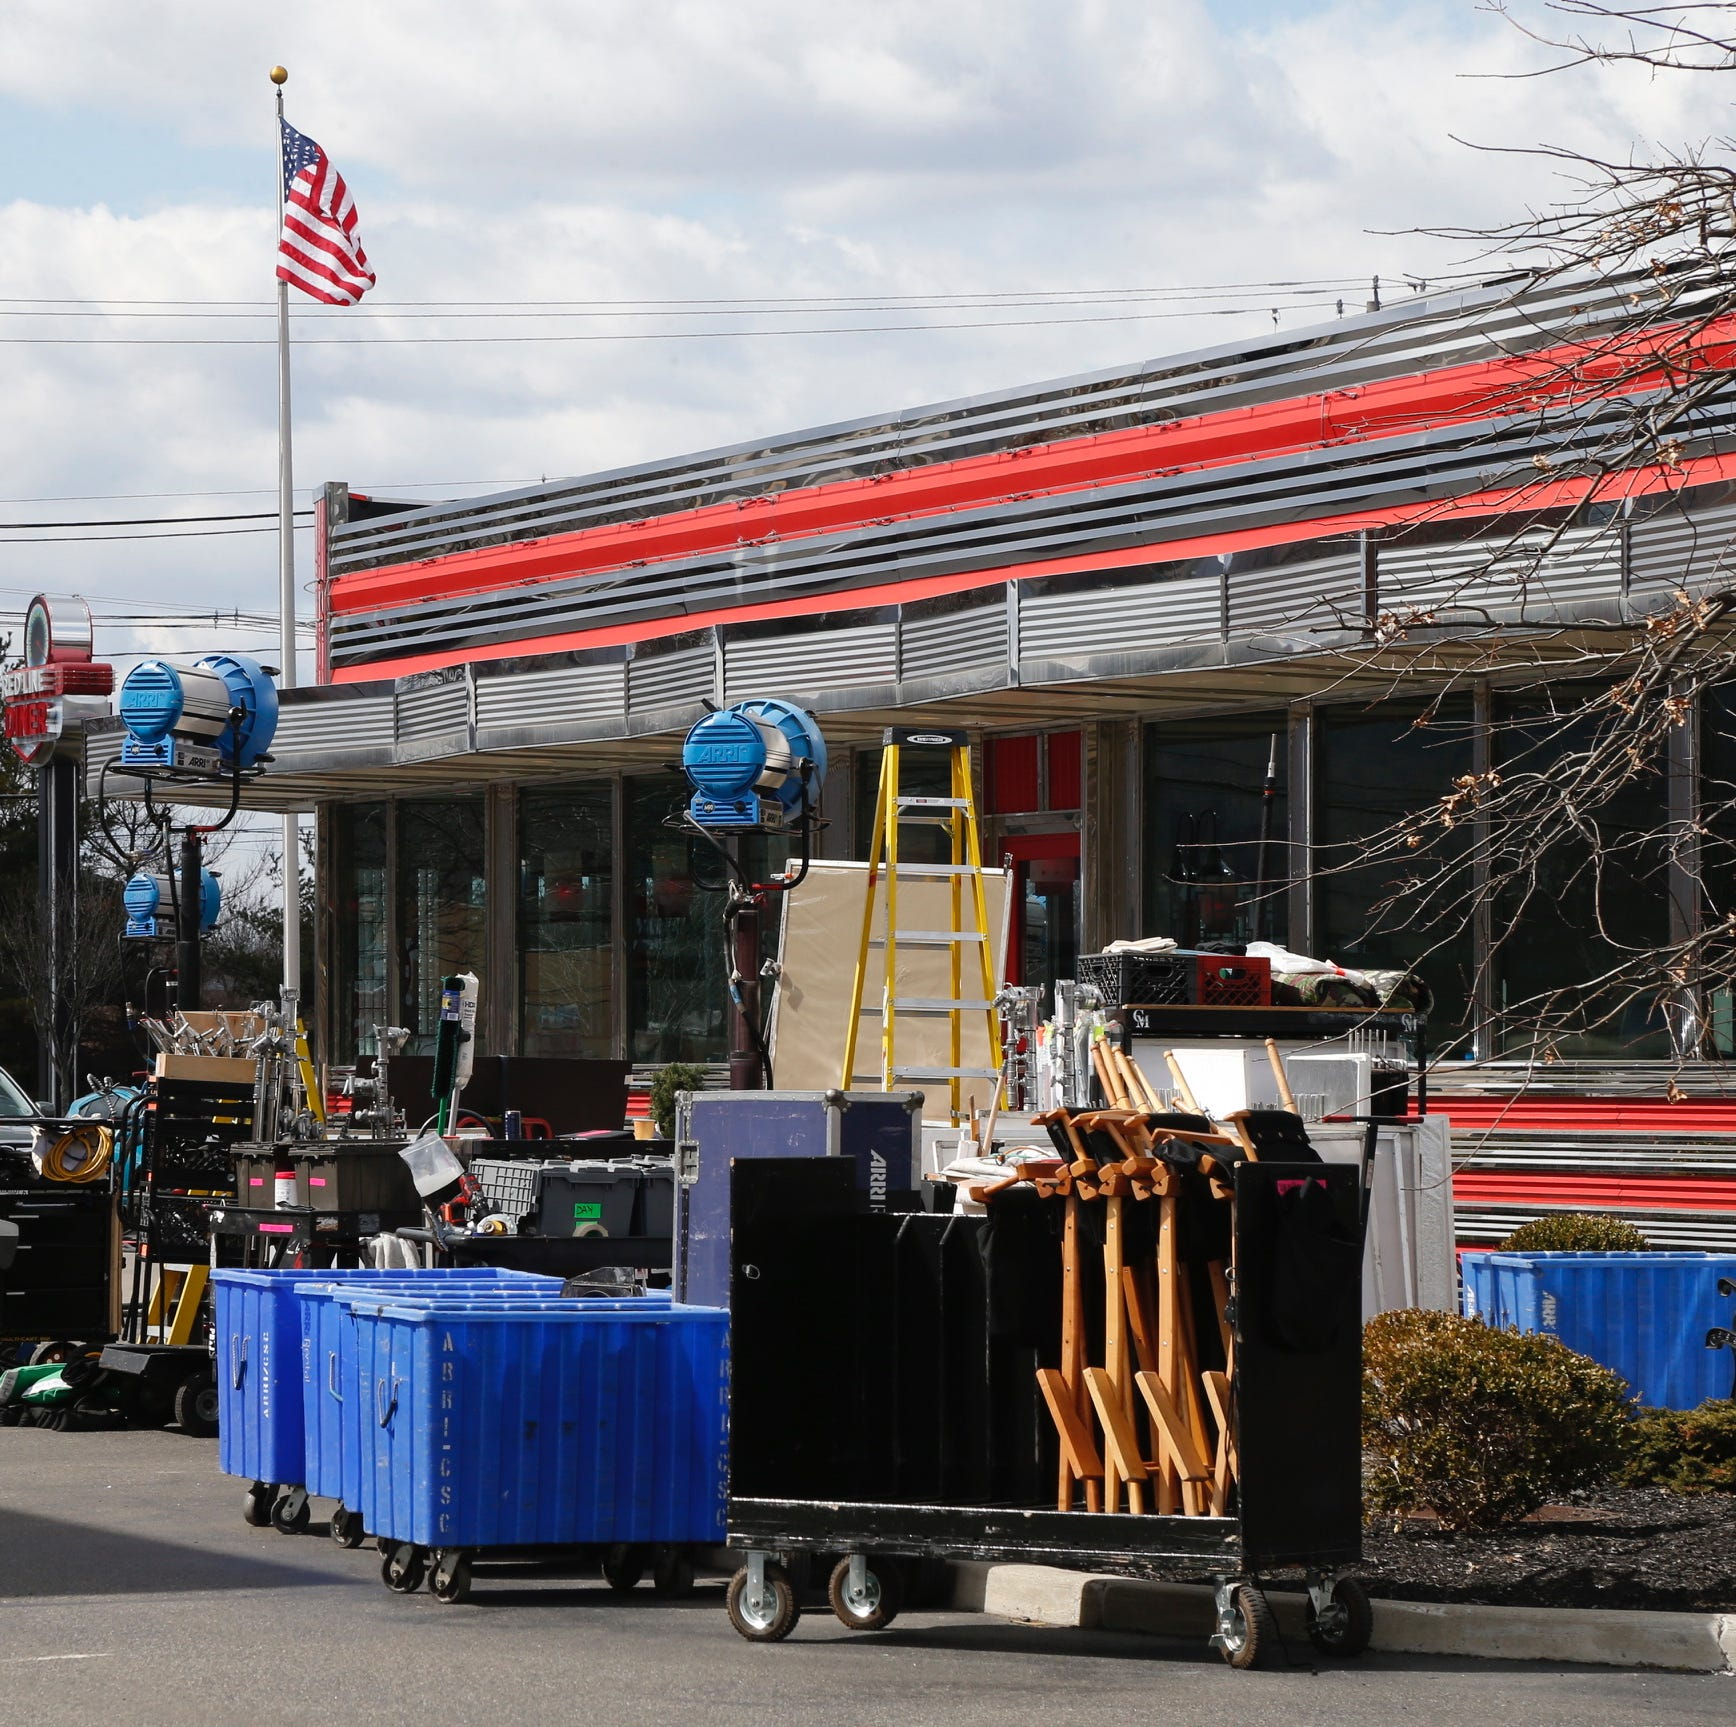 Charlie Kaufman movie for Netflix filming in Fishkill, Hudson Valley